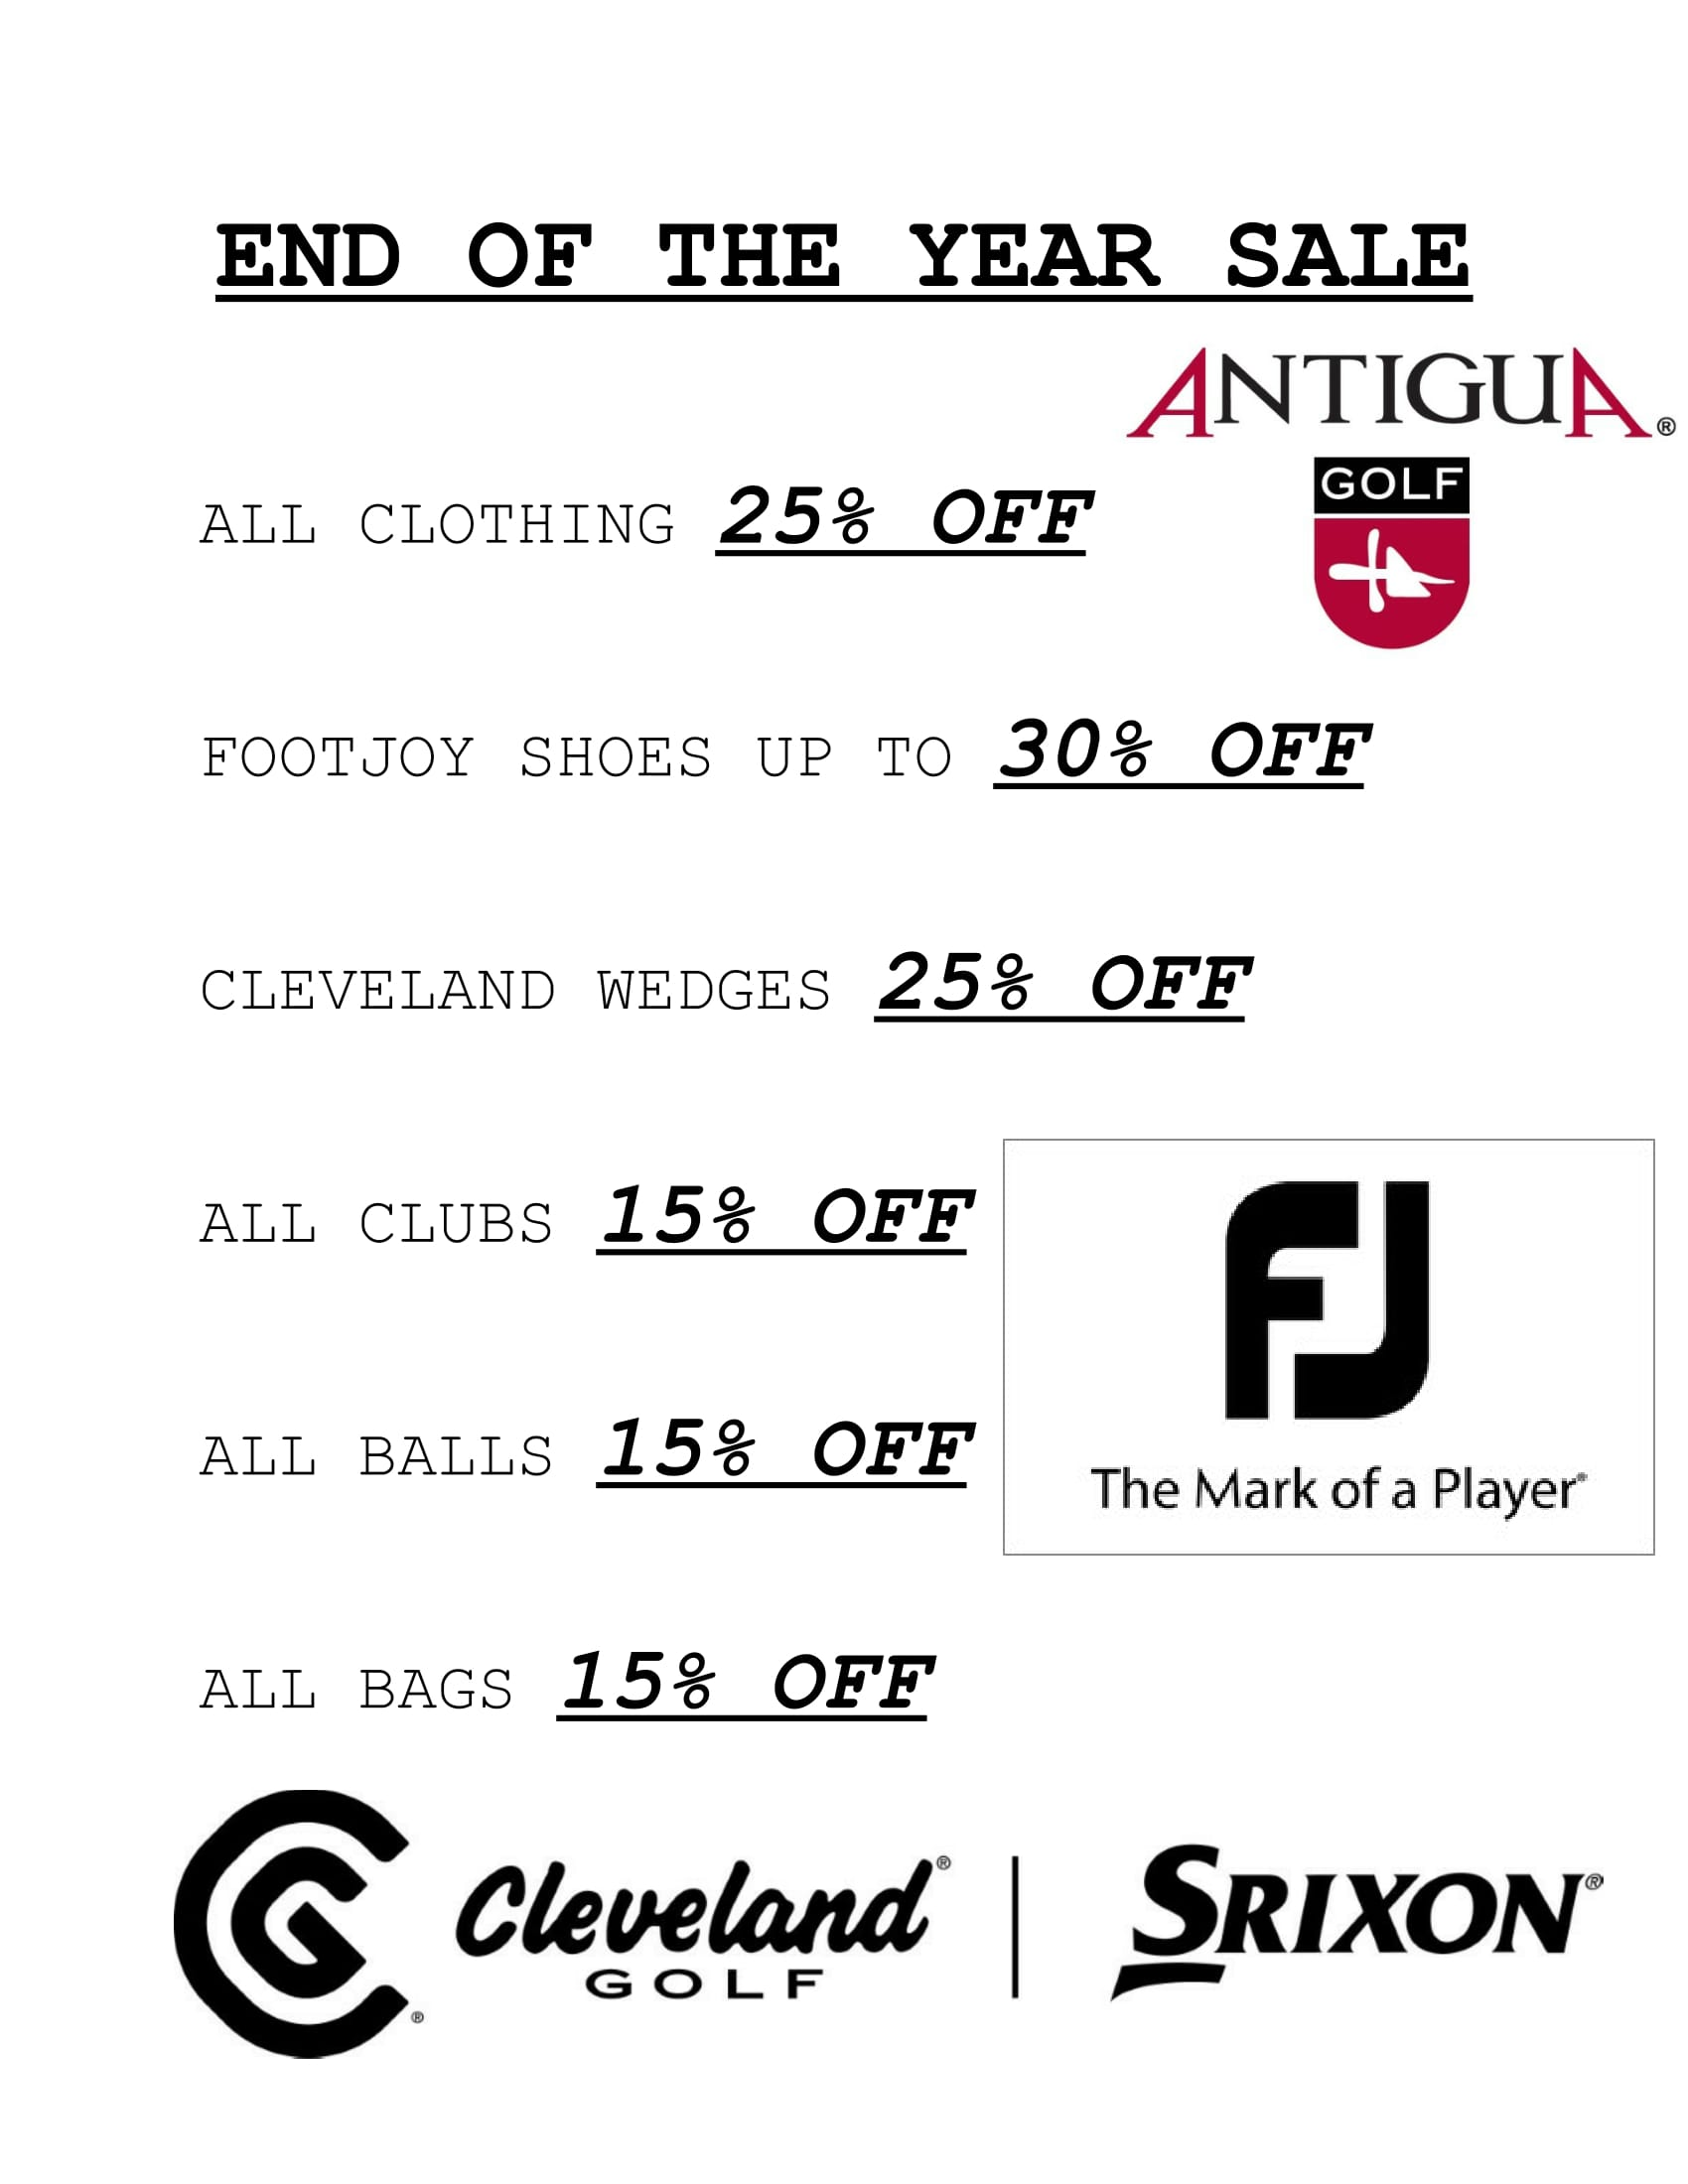 END OF THE YEAR SALE-1